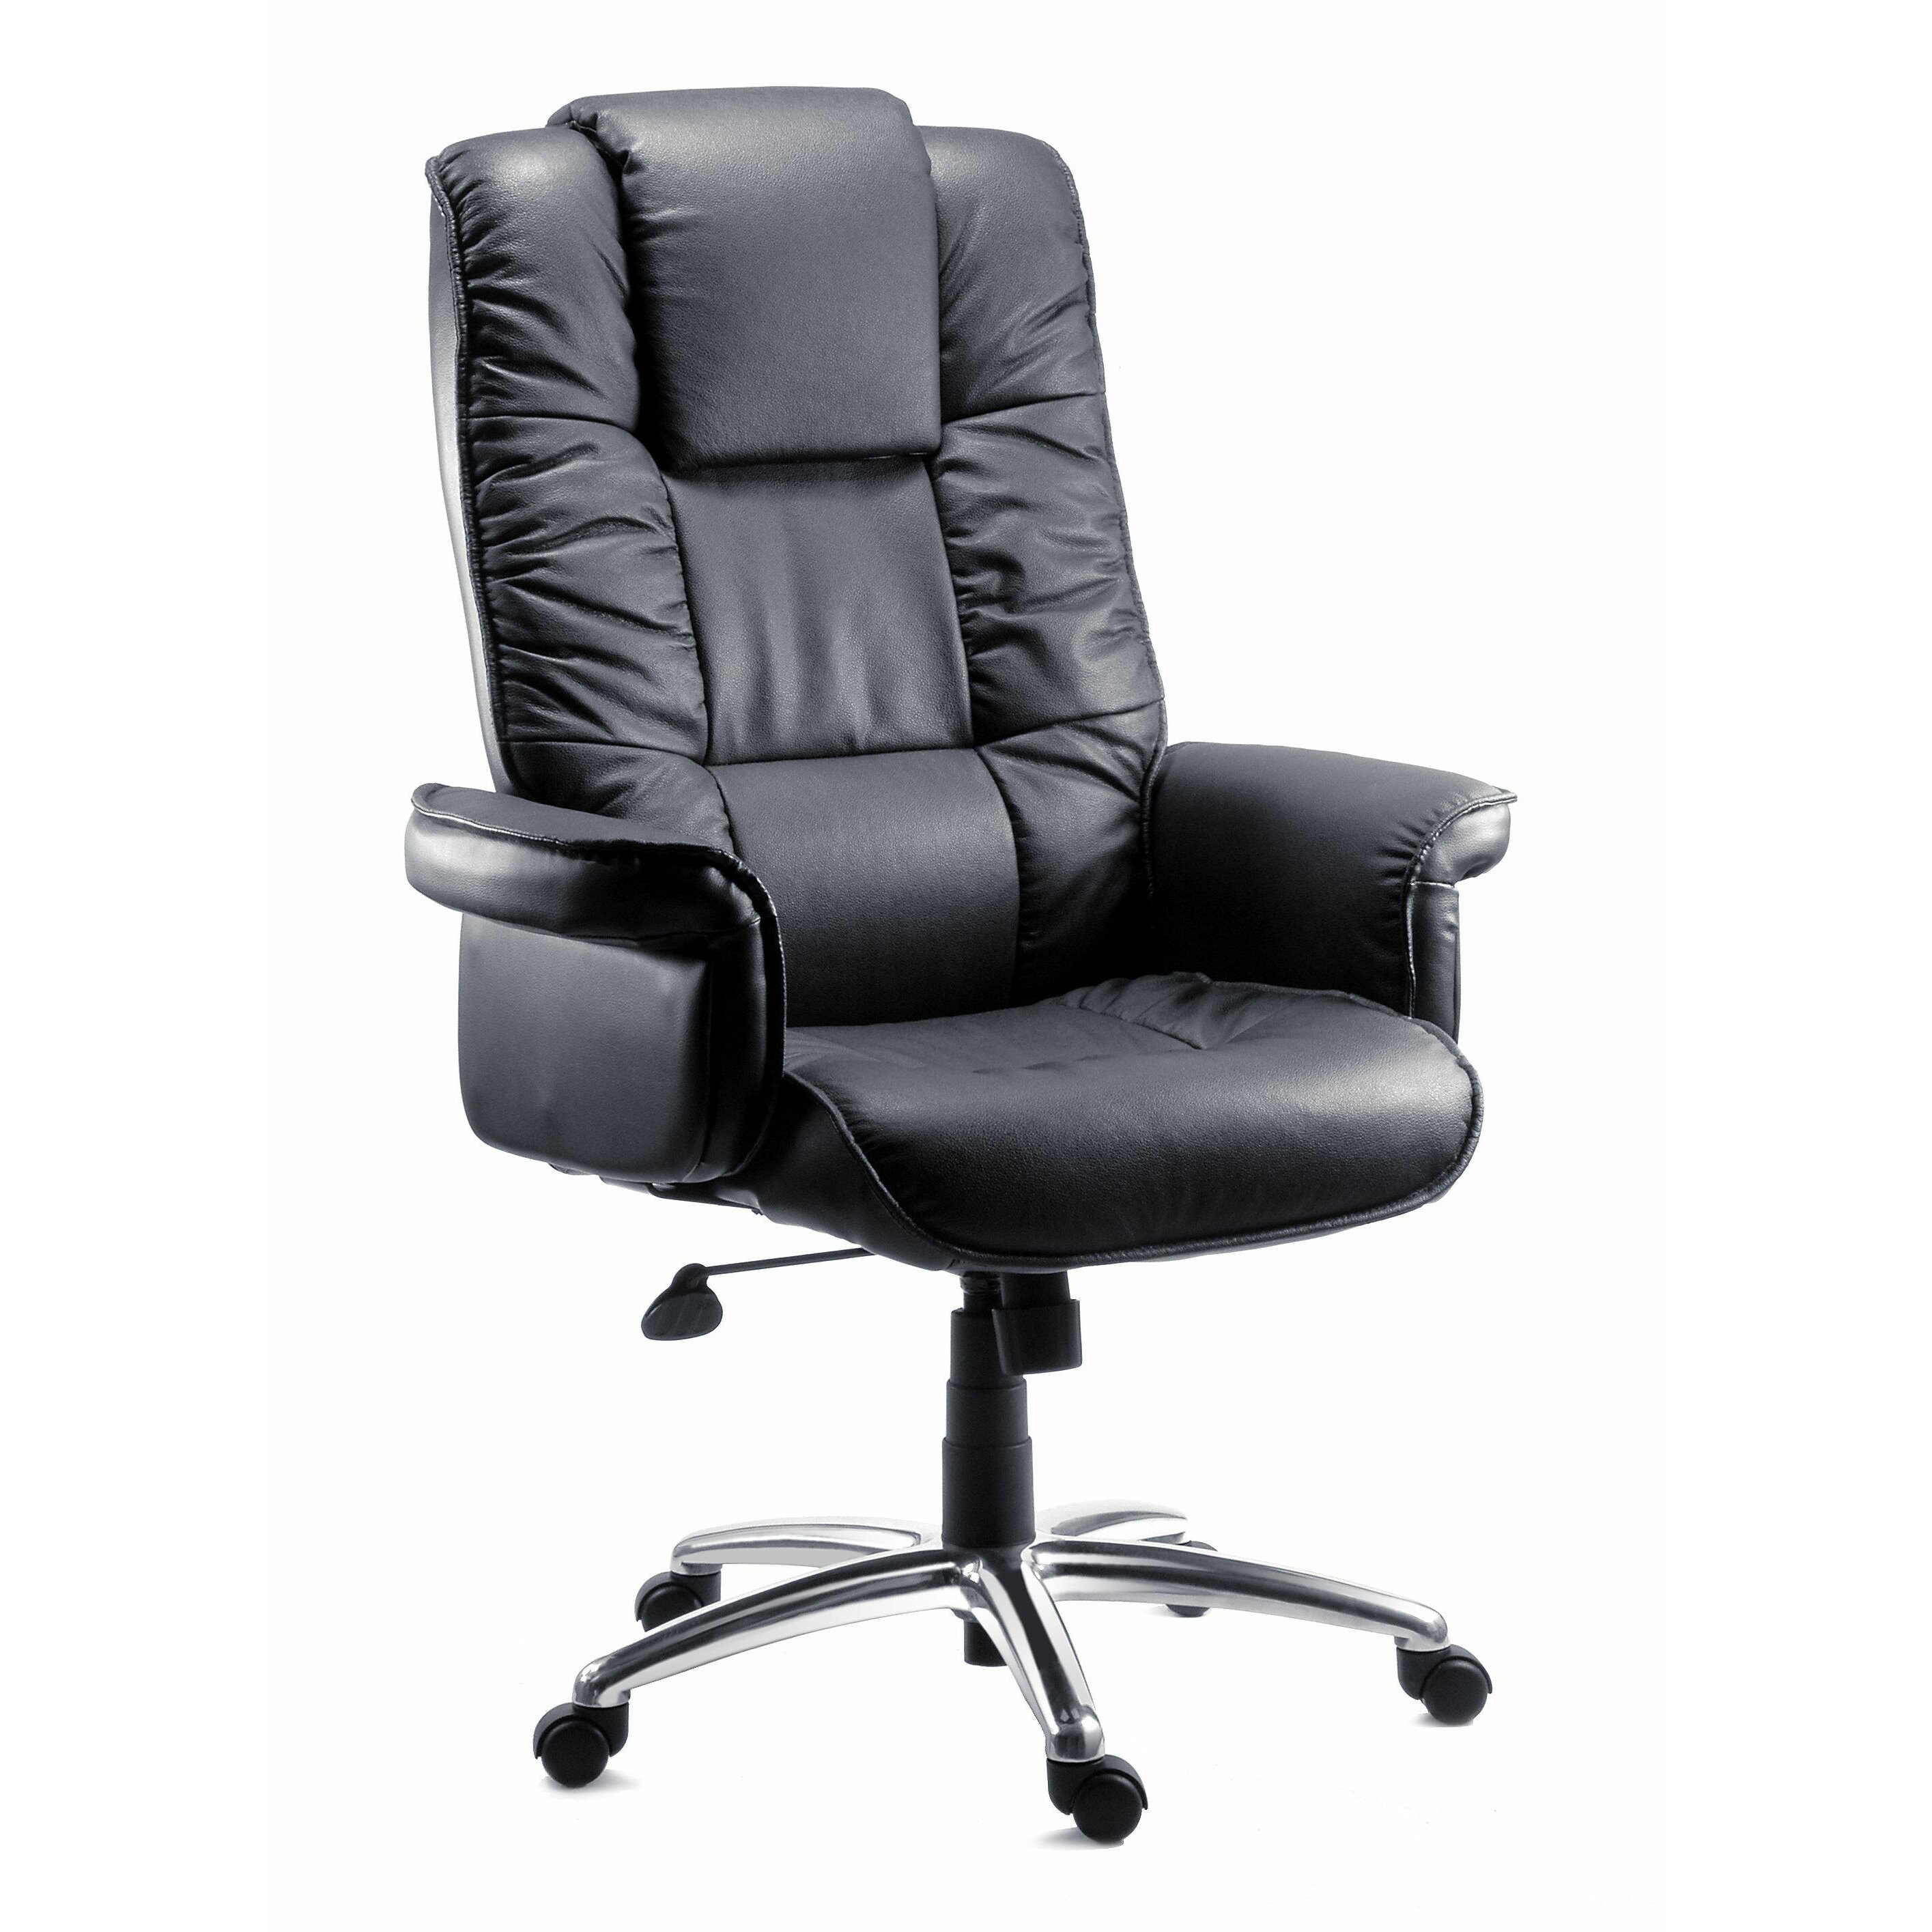 Furniture Office Furniture All Office Chairs Home Haus SKU